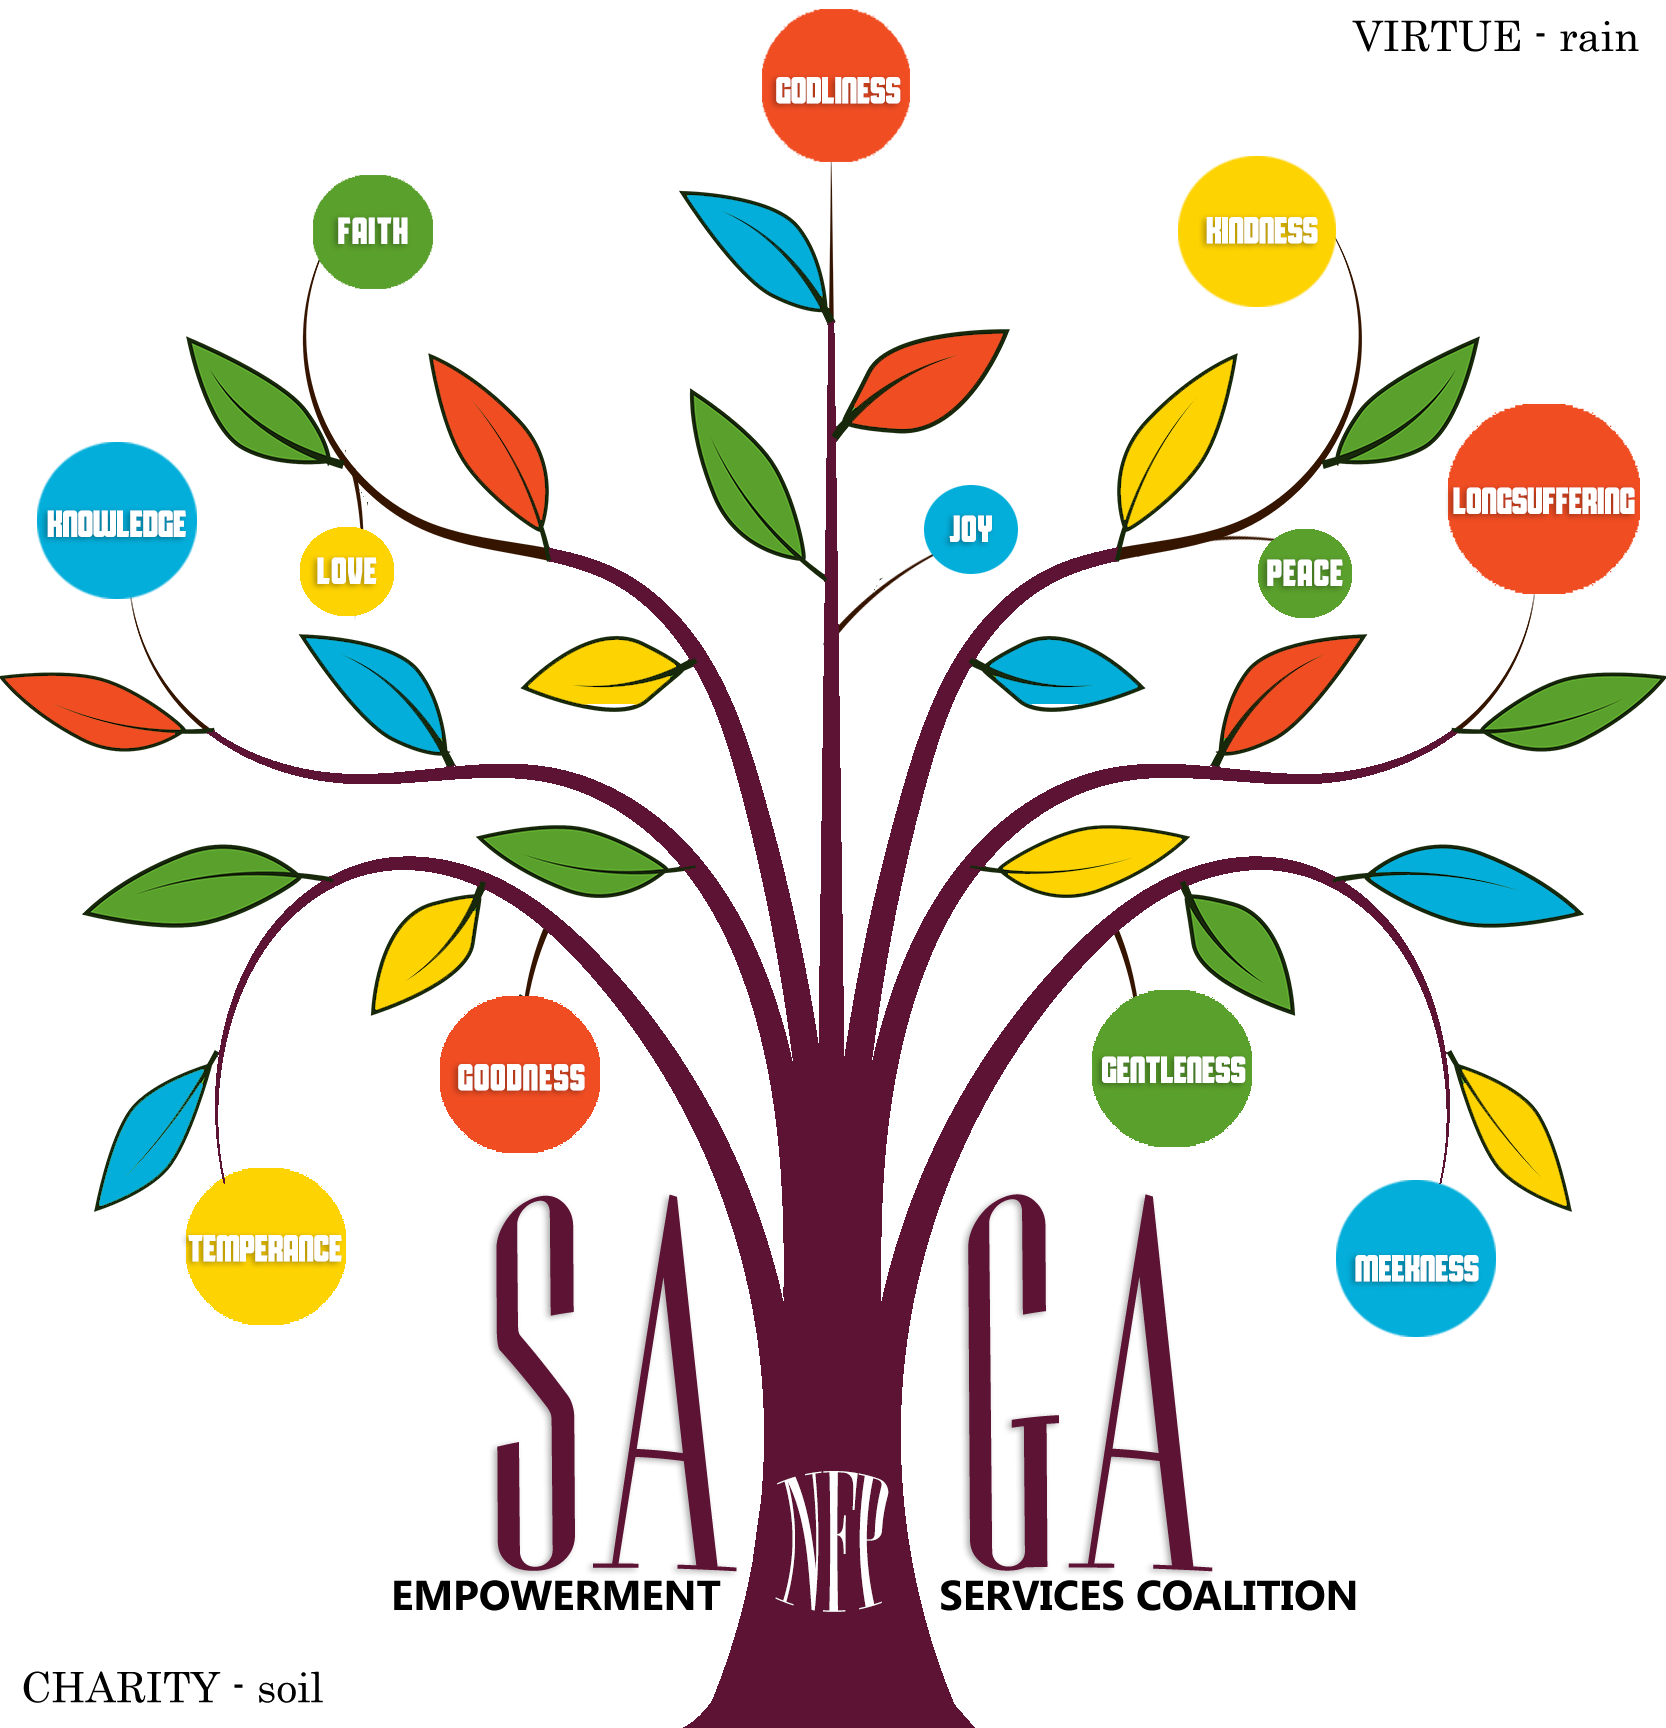 S.A.G.A. Empowerment Services Coalition, NFP